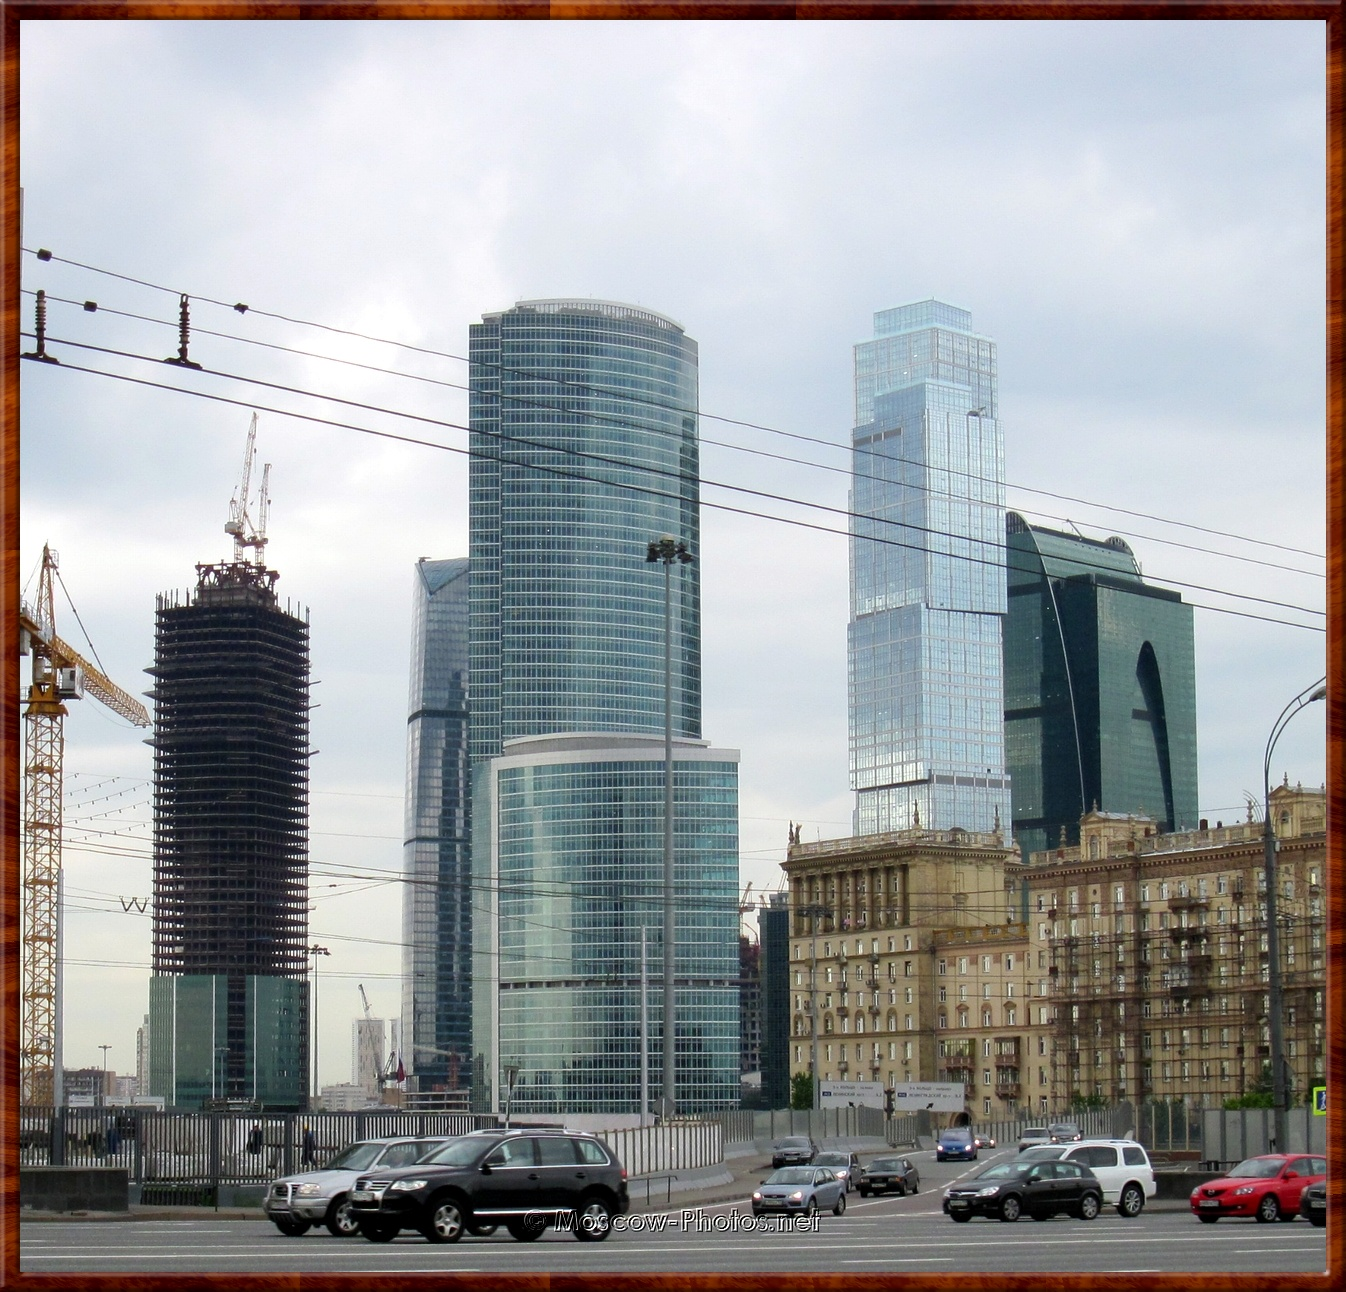 Moscow City at rainy and overcast day